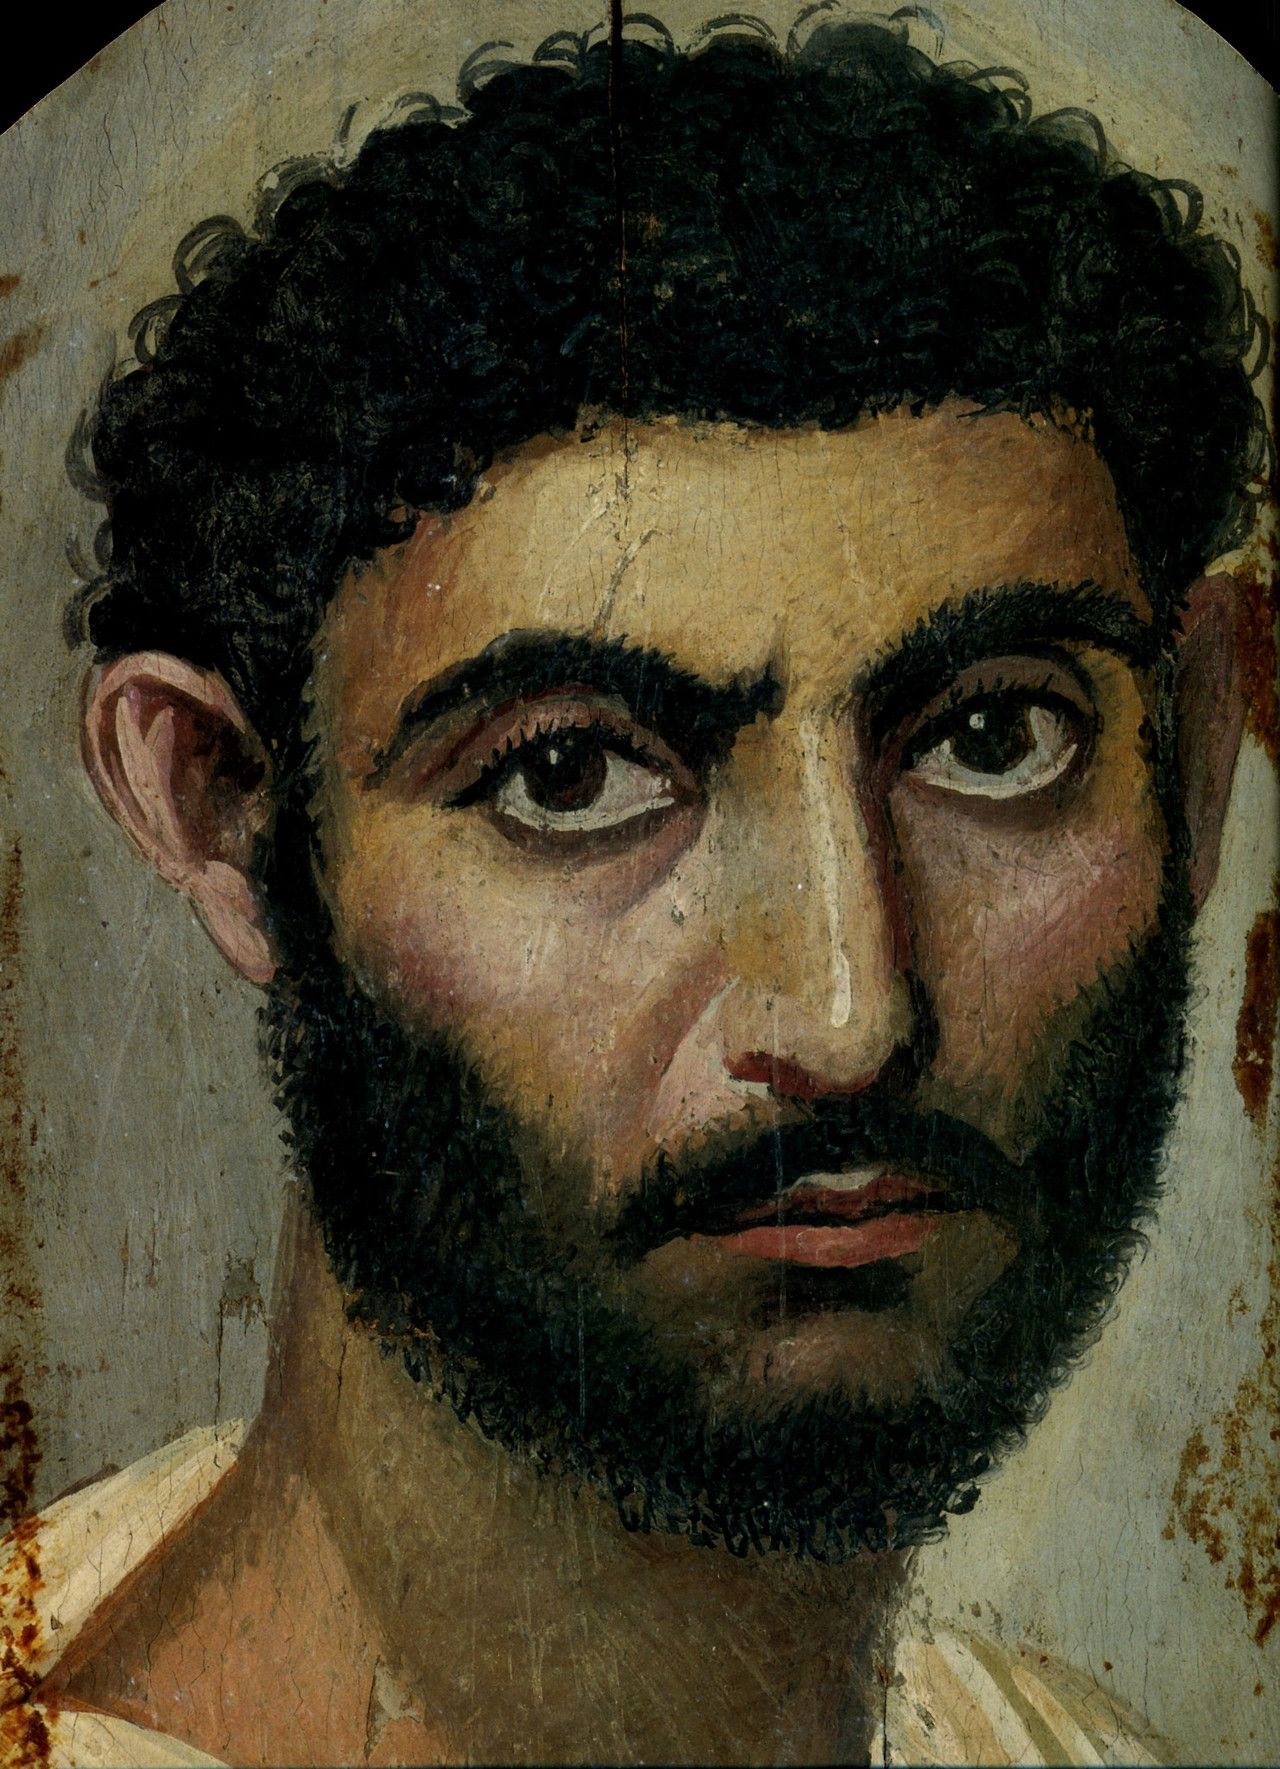 Pittura Romana Fayum Ancient Art John Berger Coptic Mummy Portraits Fayum